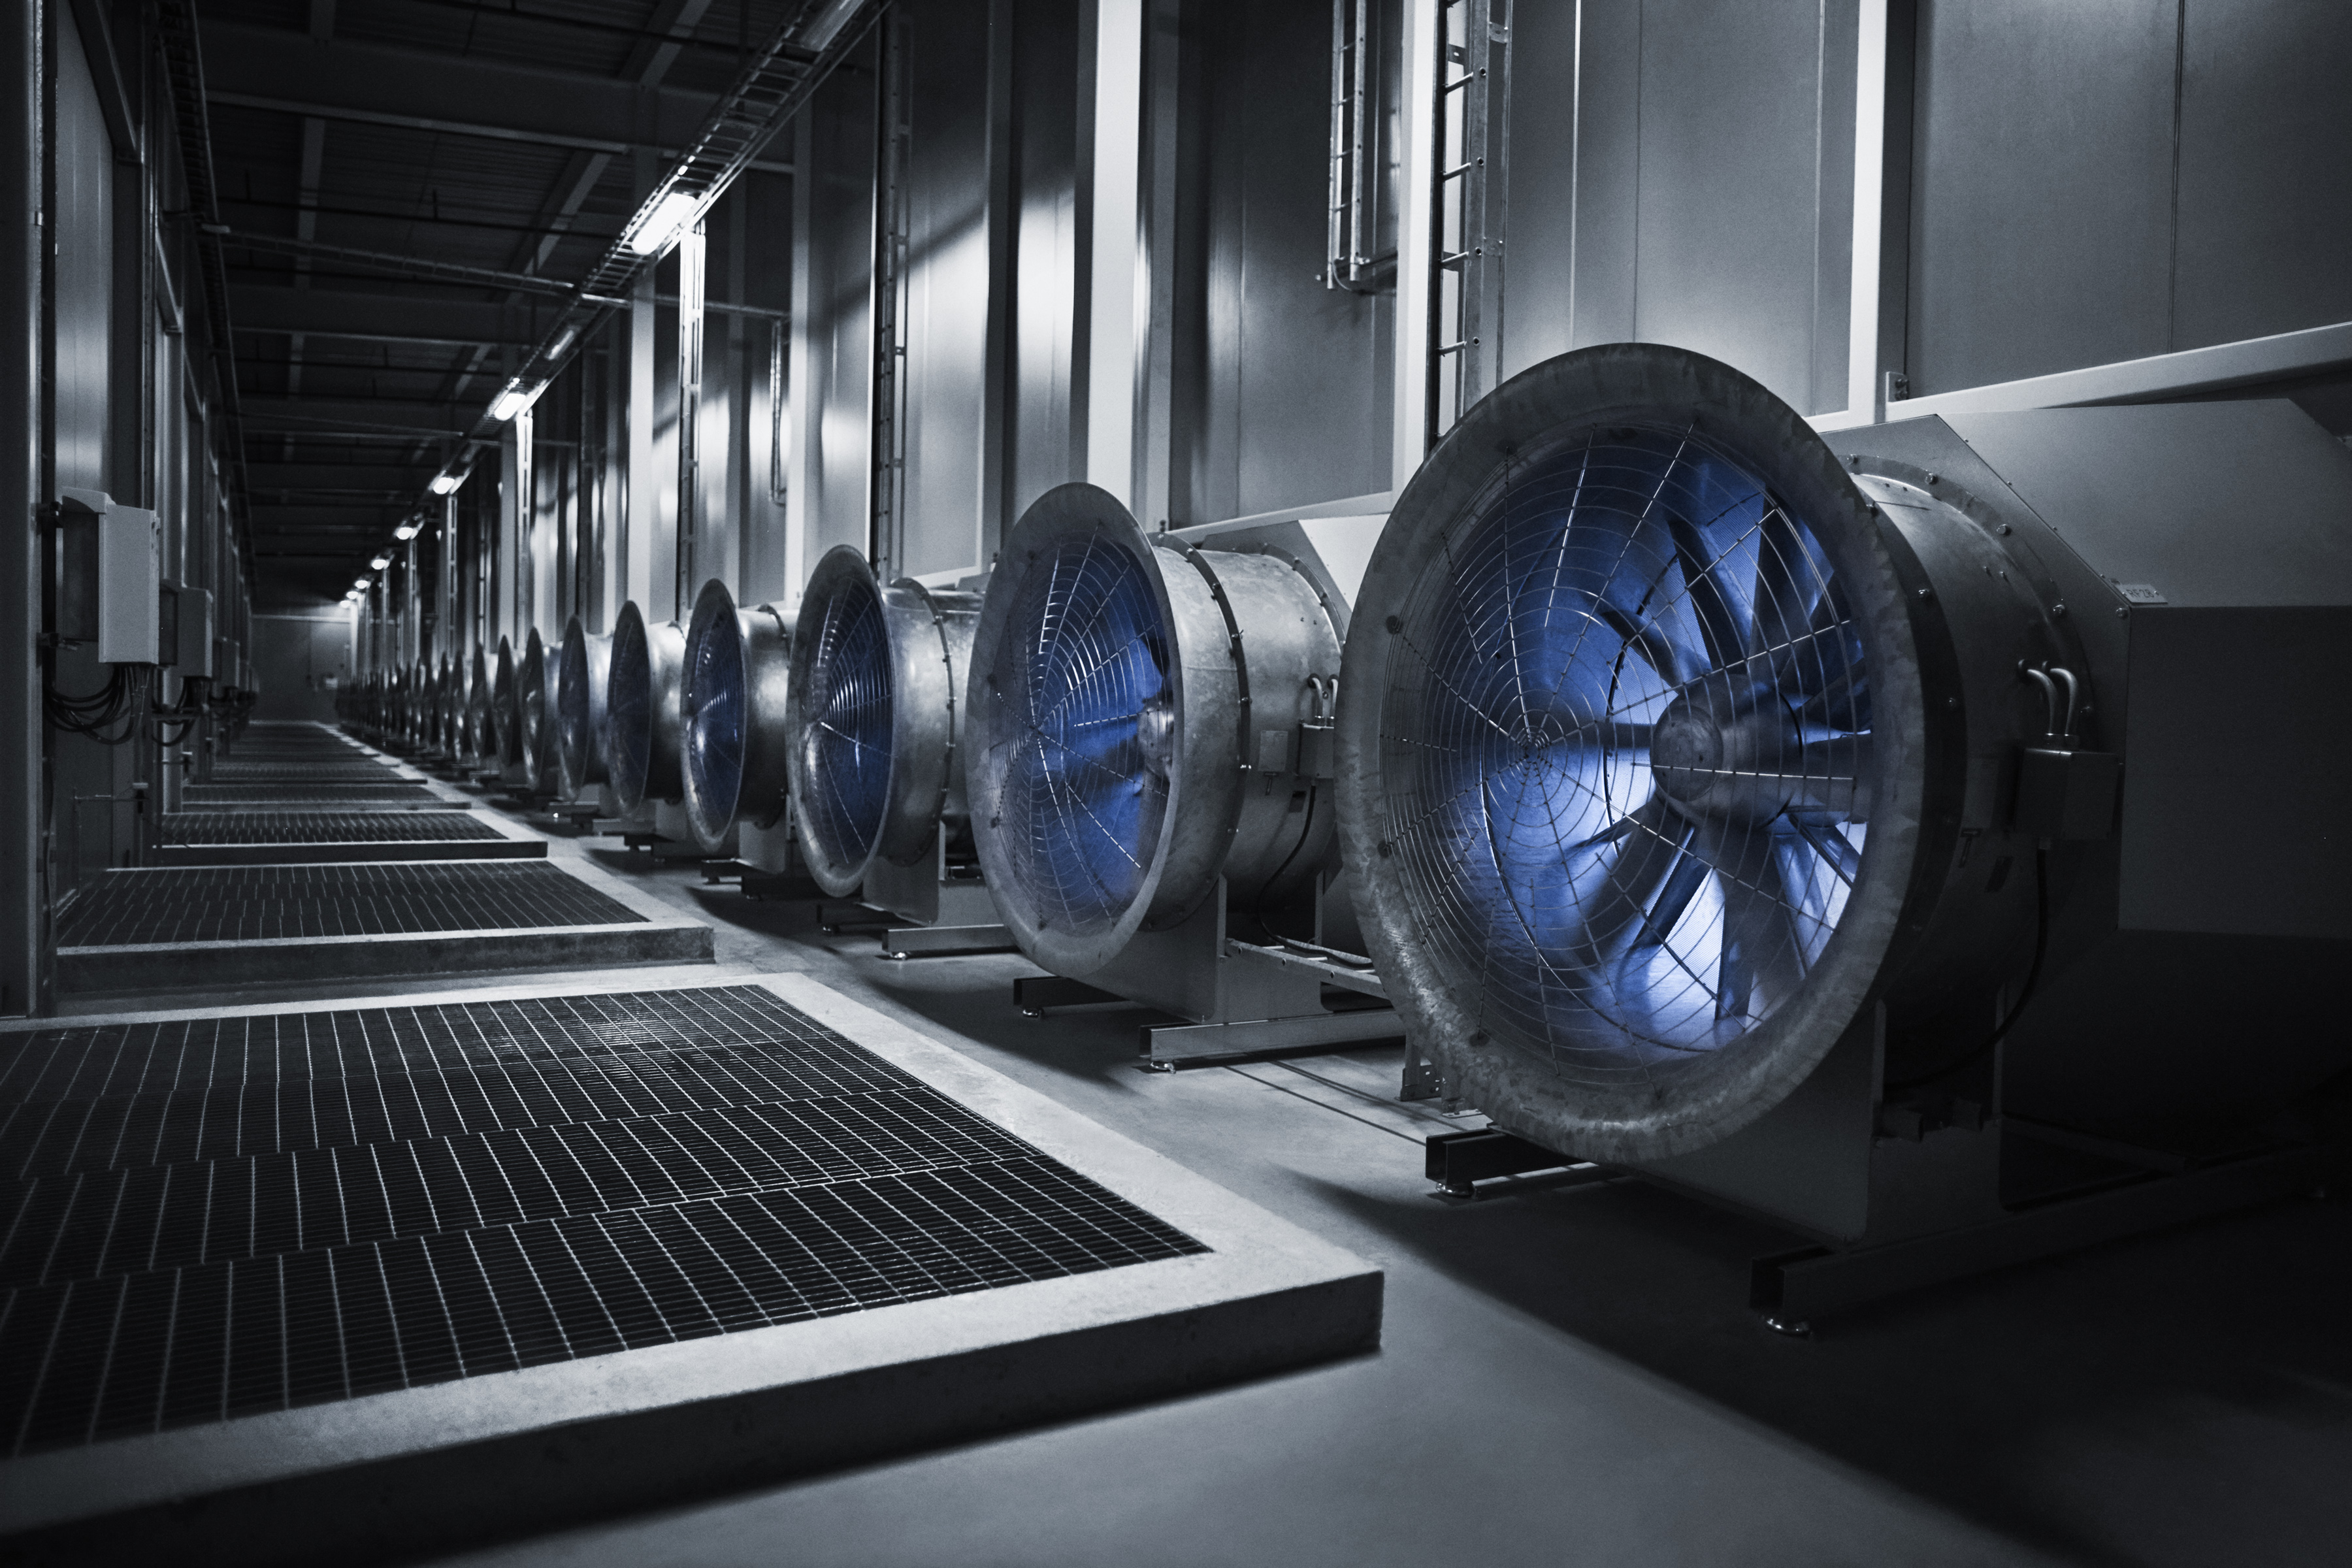 These fans draw in air from the outside to cool the servers down. Conversely, when temperatures drop during the winter, heat from the servers warm the building.